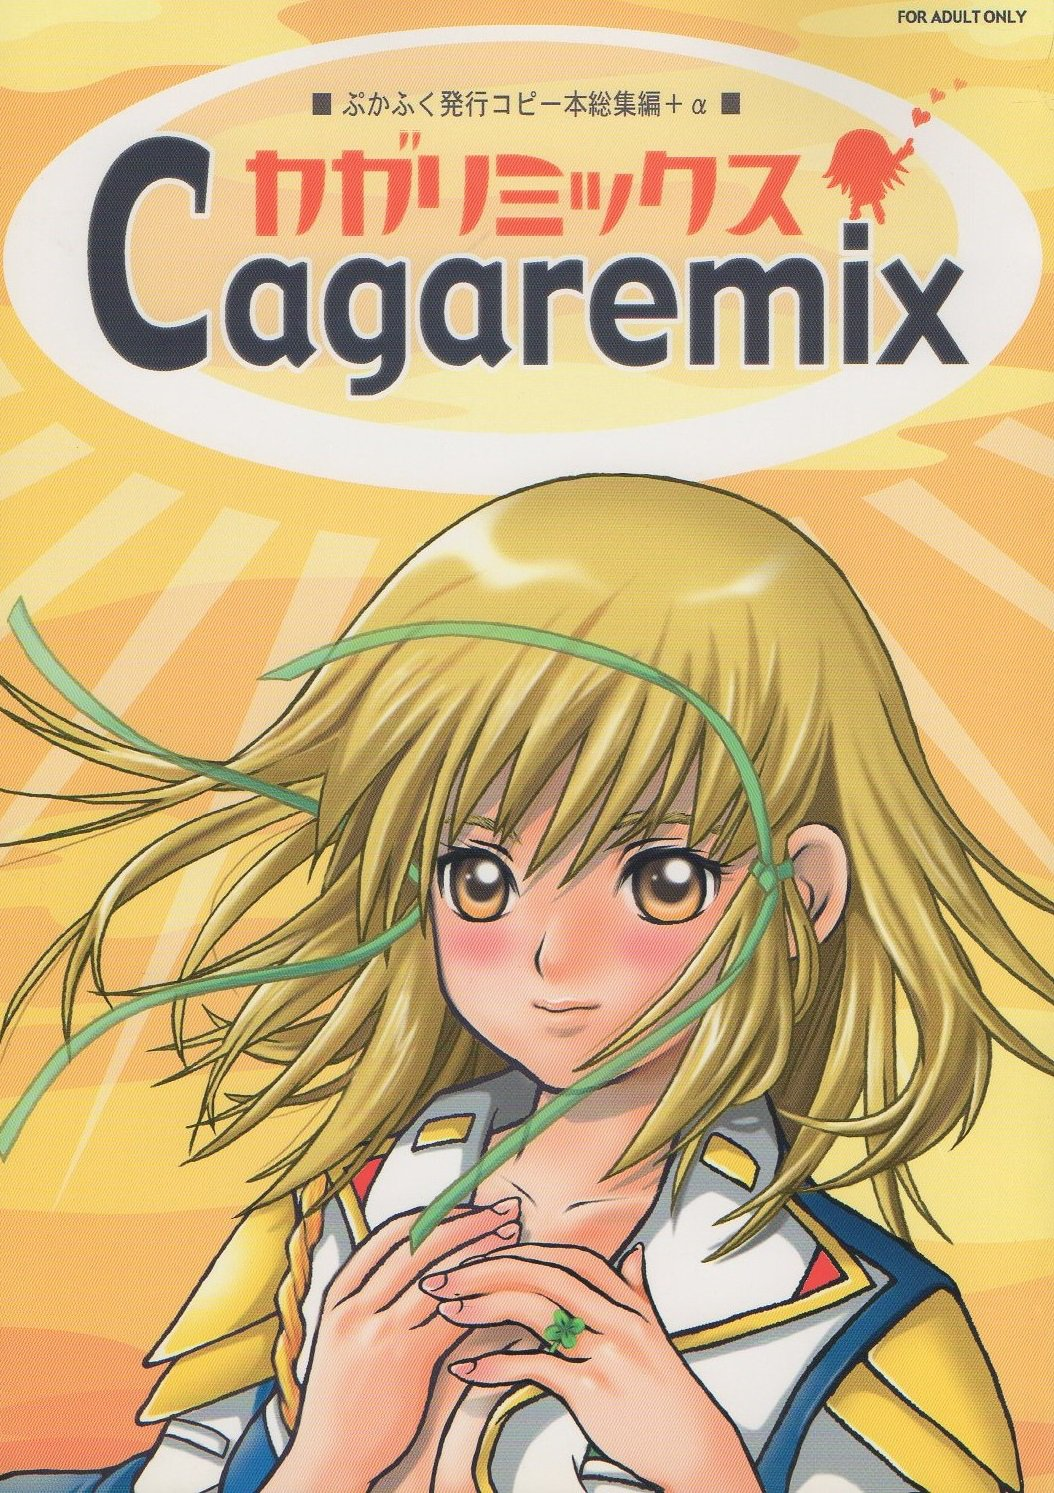 ADULT 18+ Doujinshi EG43 Gundam Seed	Cagareimix Cagalli centric 52 pages